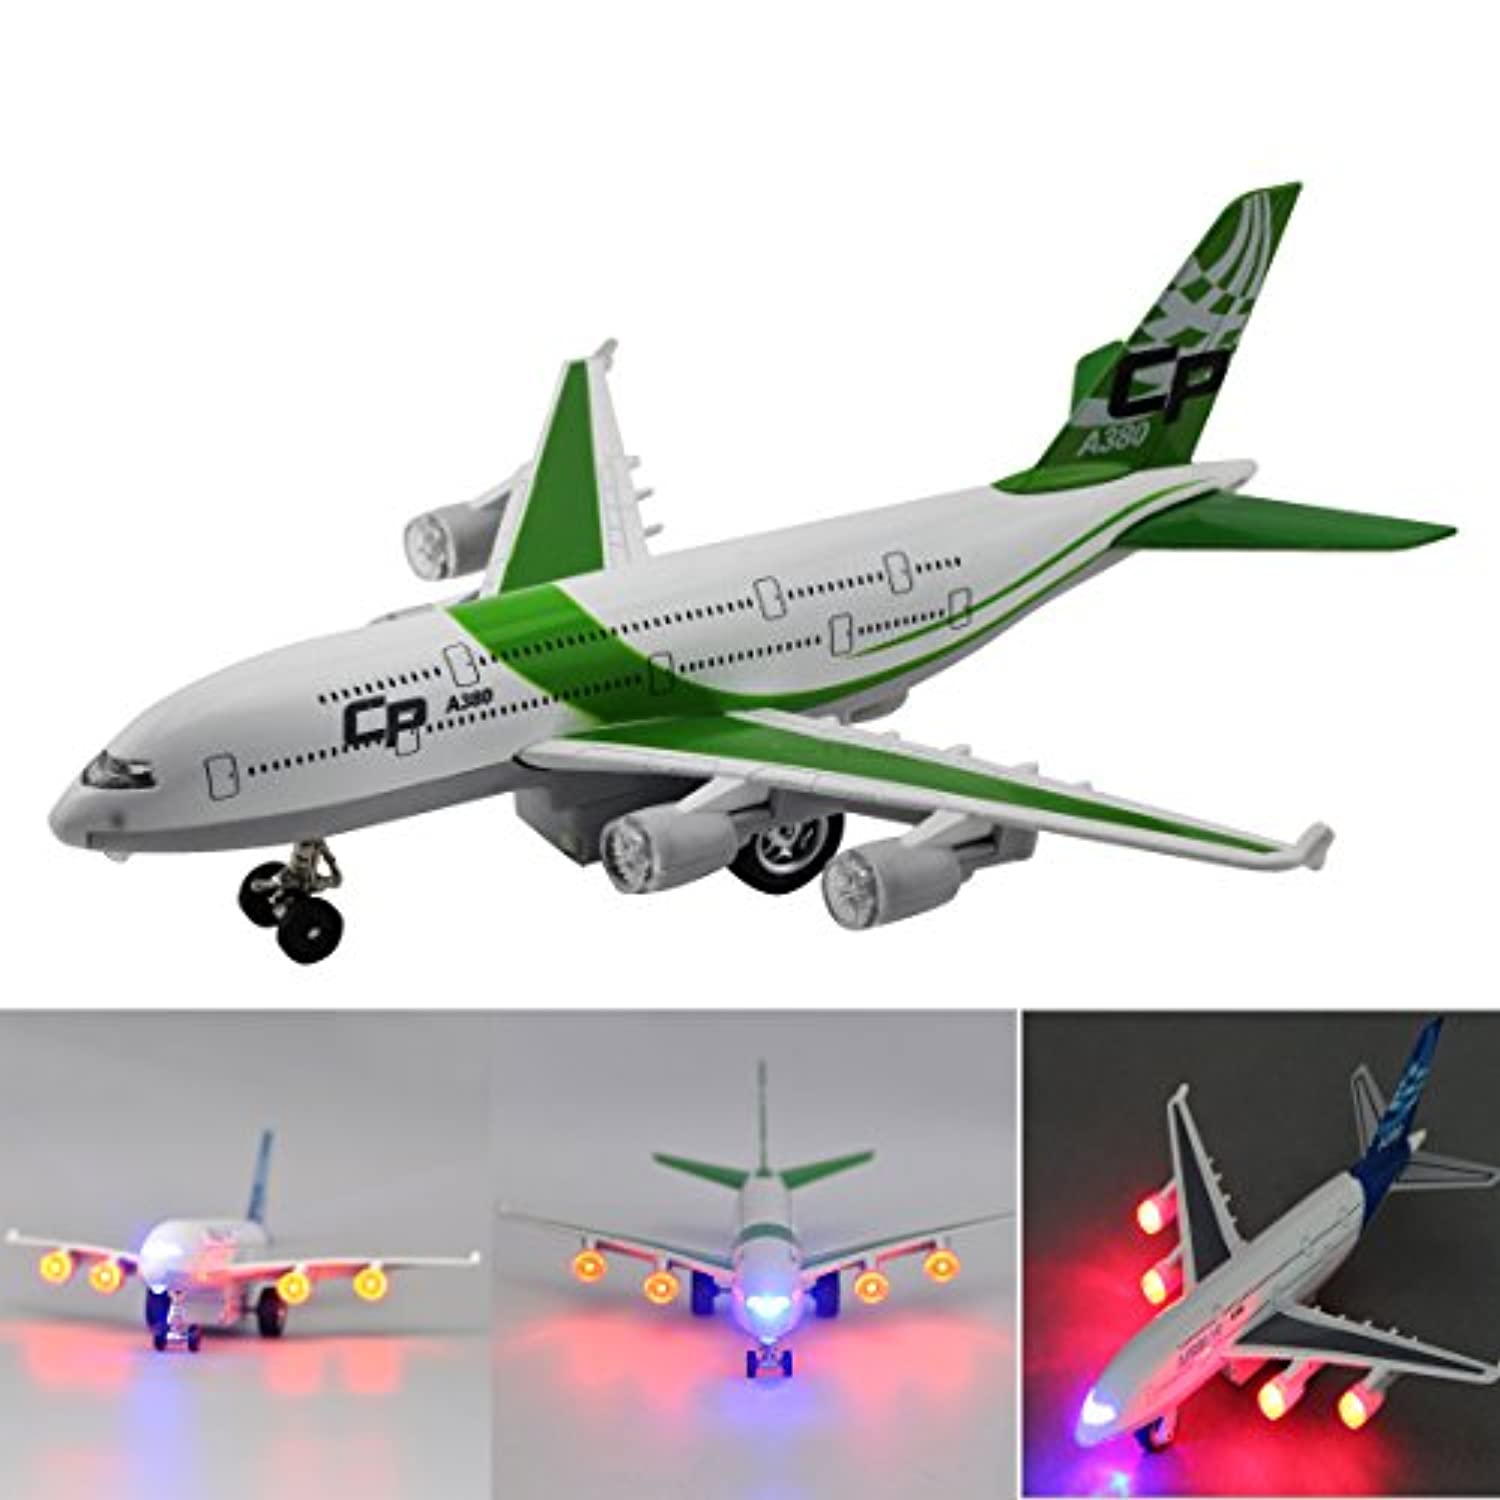 Moleya Kids Toys 20CM Airbus Emirates A380 Airplane Pull Back Electric Plane Model with Lights and Sounds (Green) by Moleya